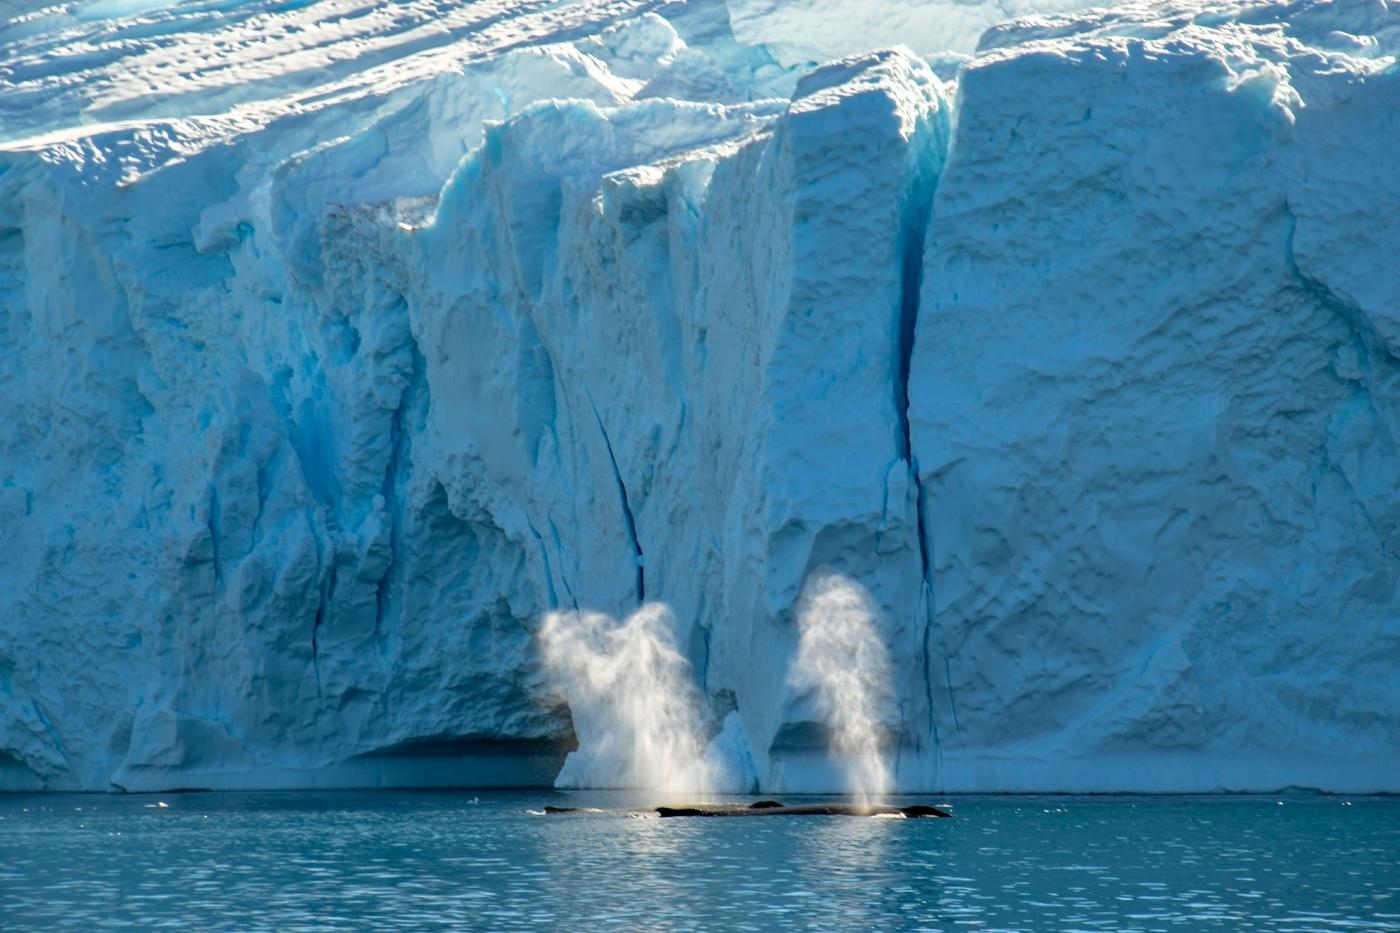 Whales in front of iceberg in Greenland. Photo by Guide to Greenland